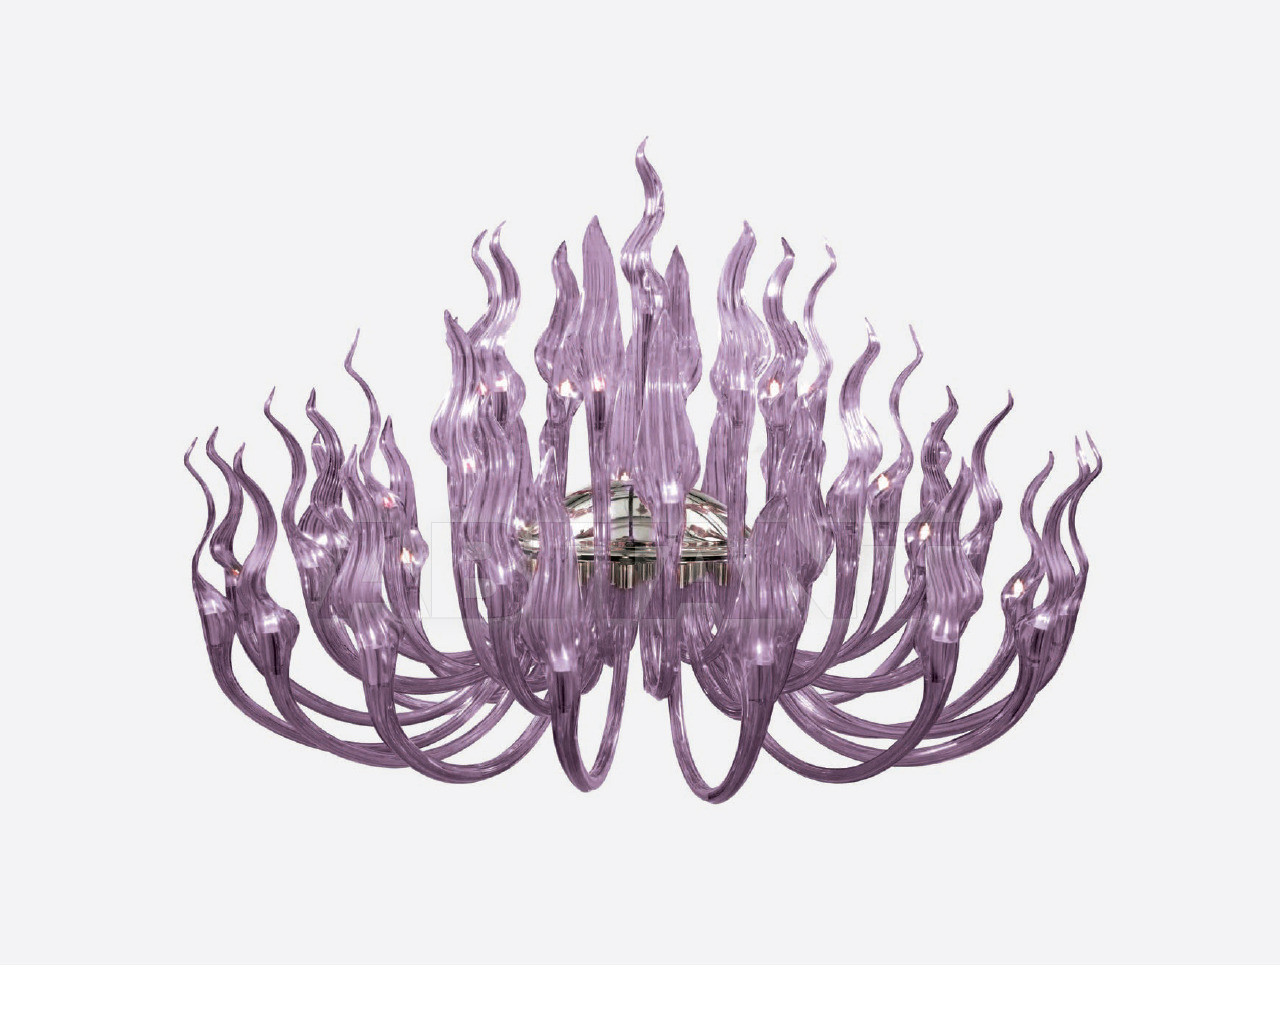 Купить Люстра Iris Cristal Contemporary 640157 8+8+8+16